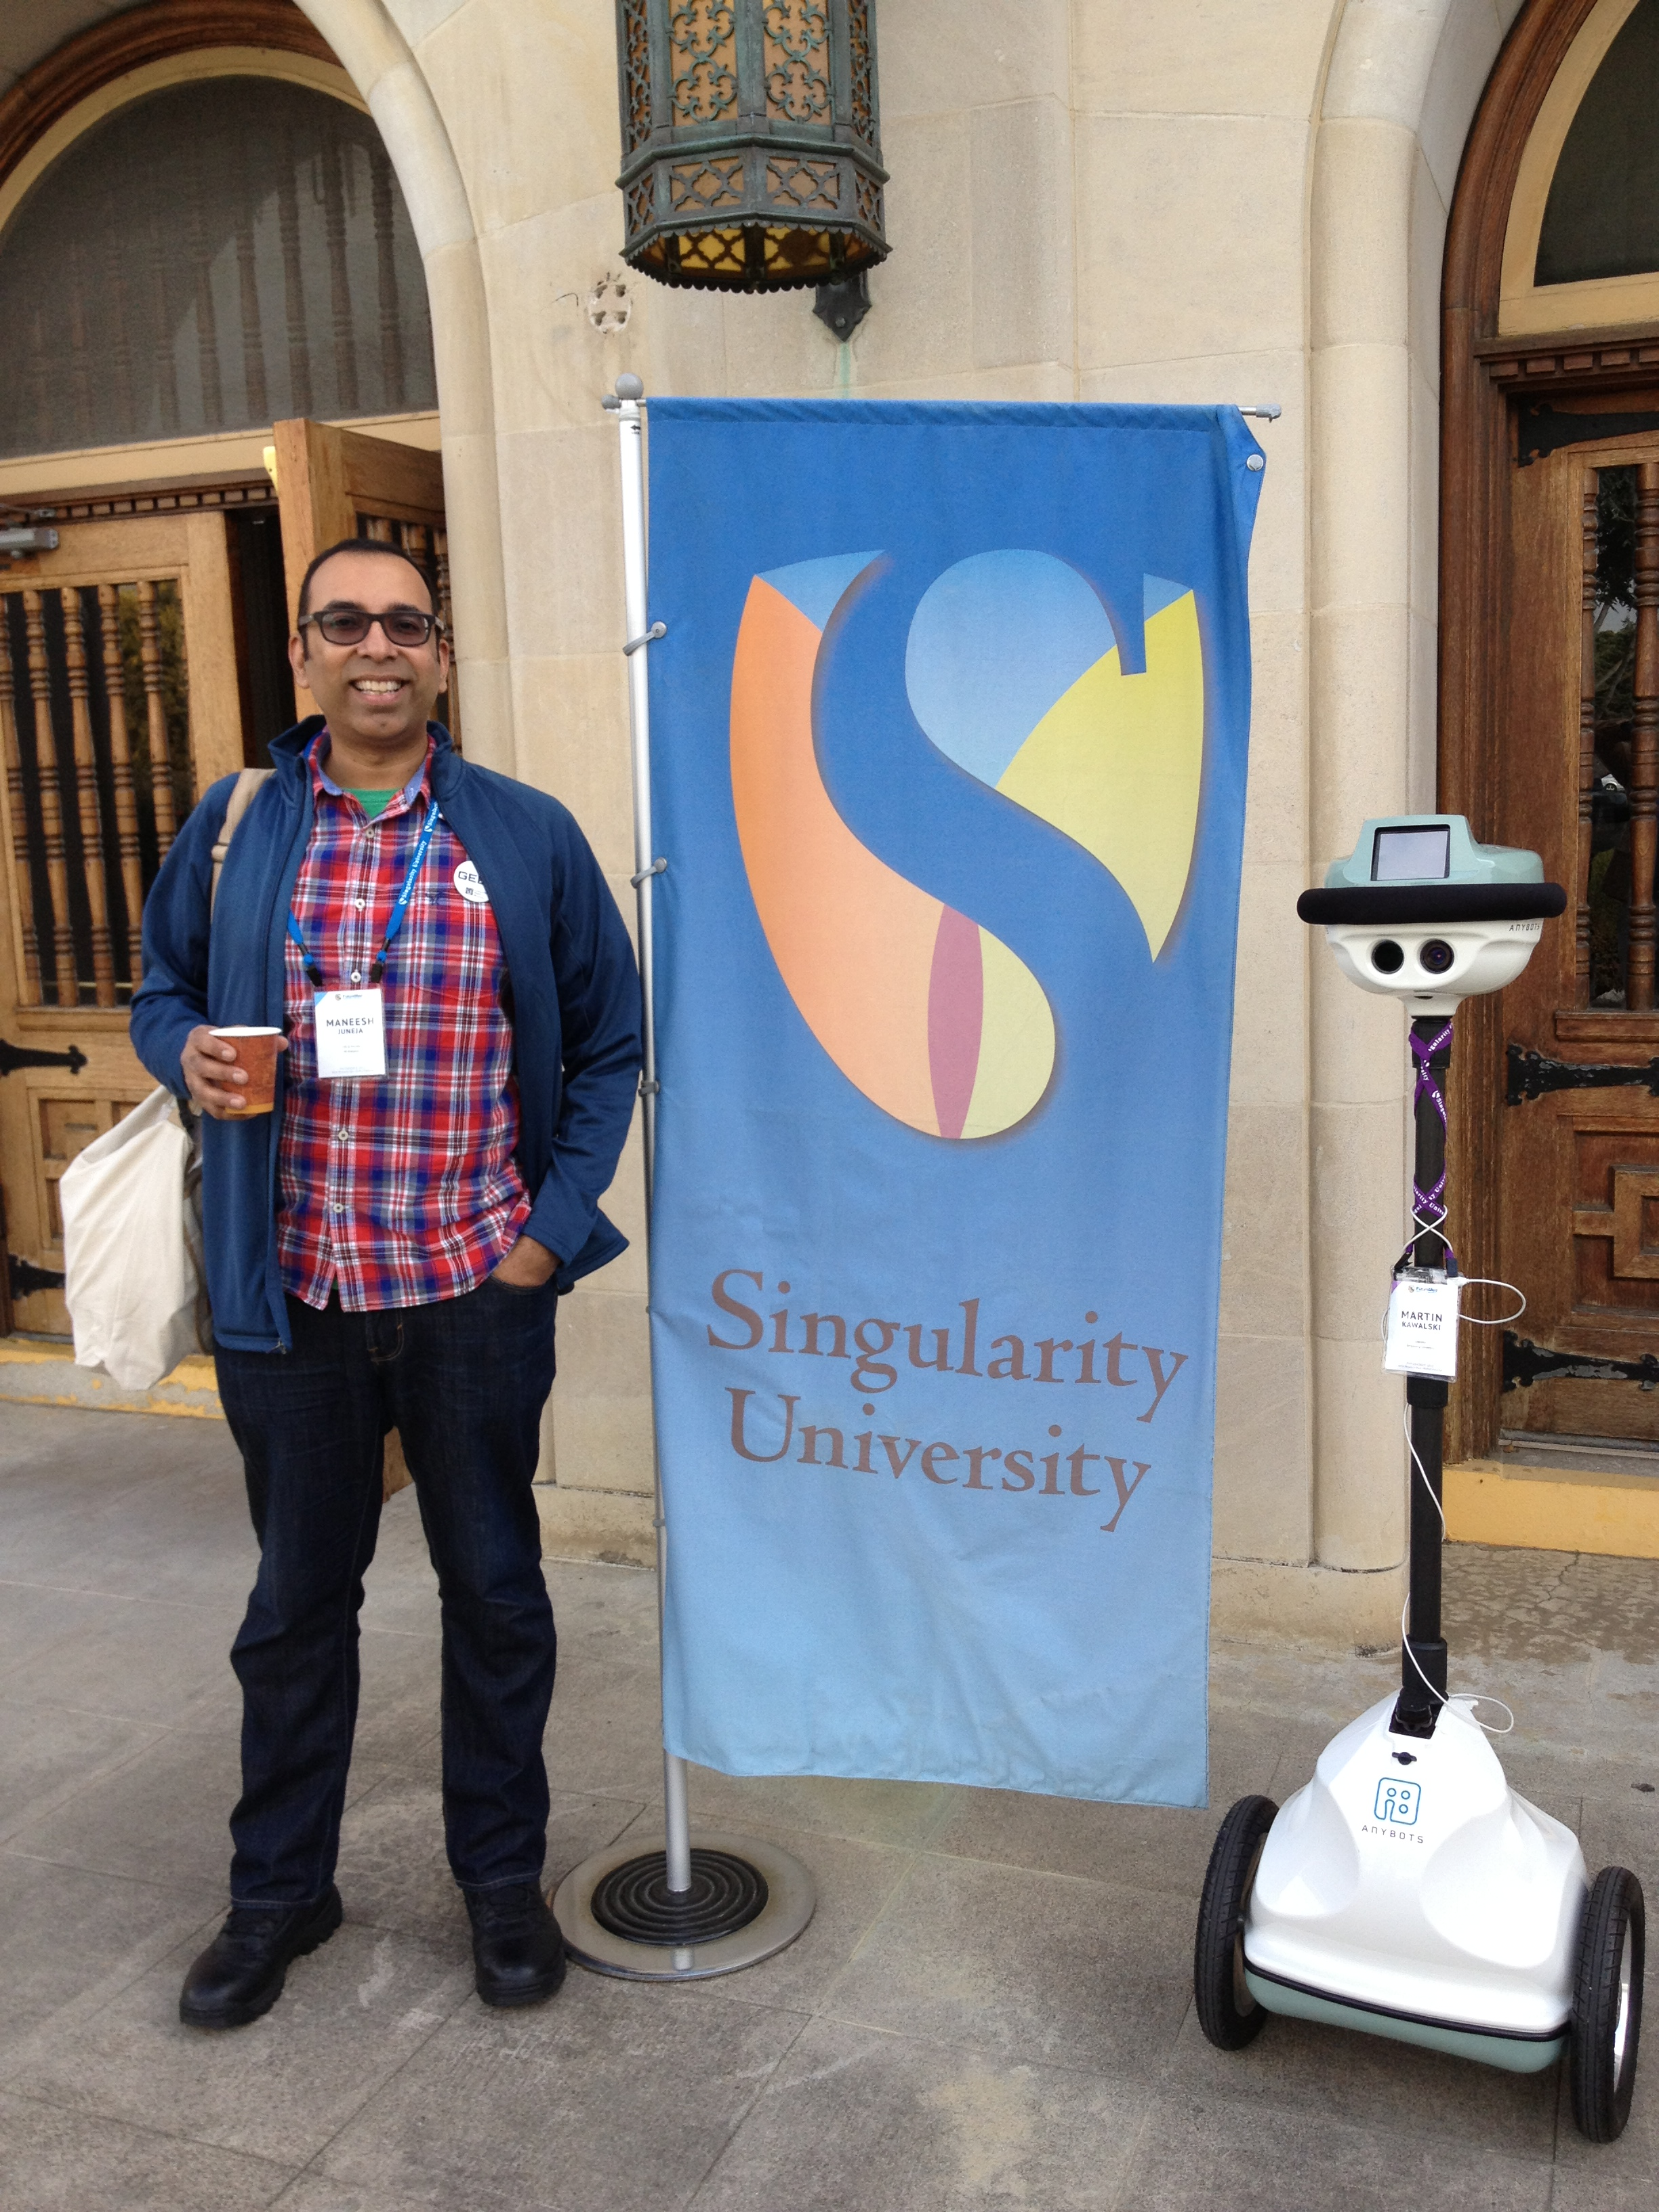 When I turned up to Singularity University, I was greeted by a virtual human!